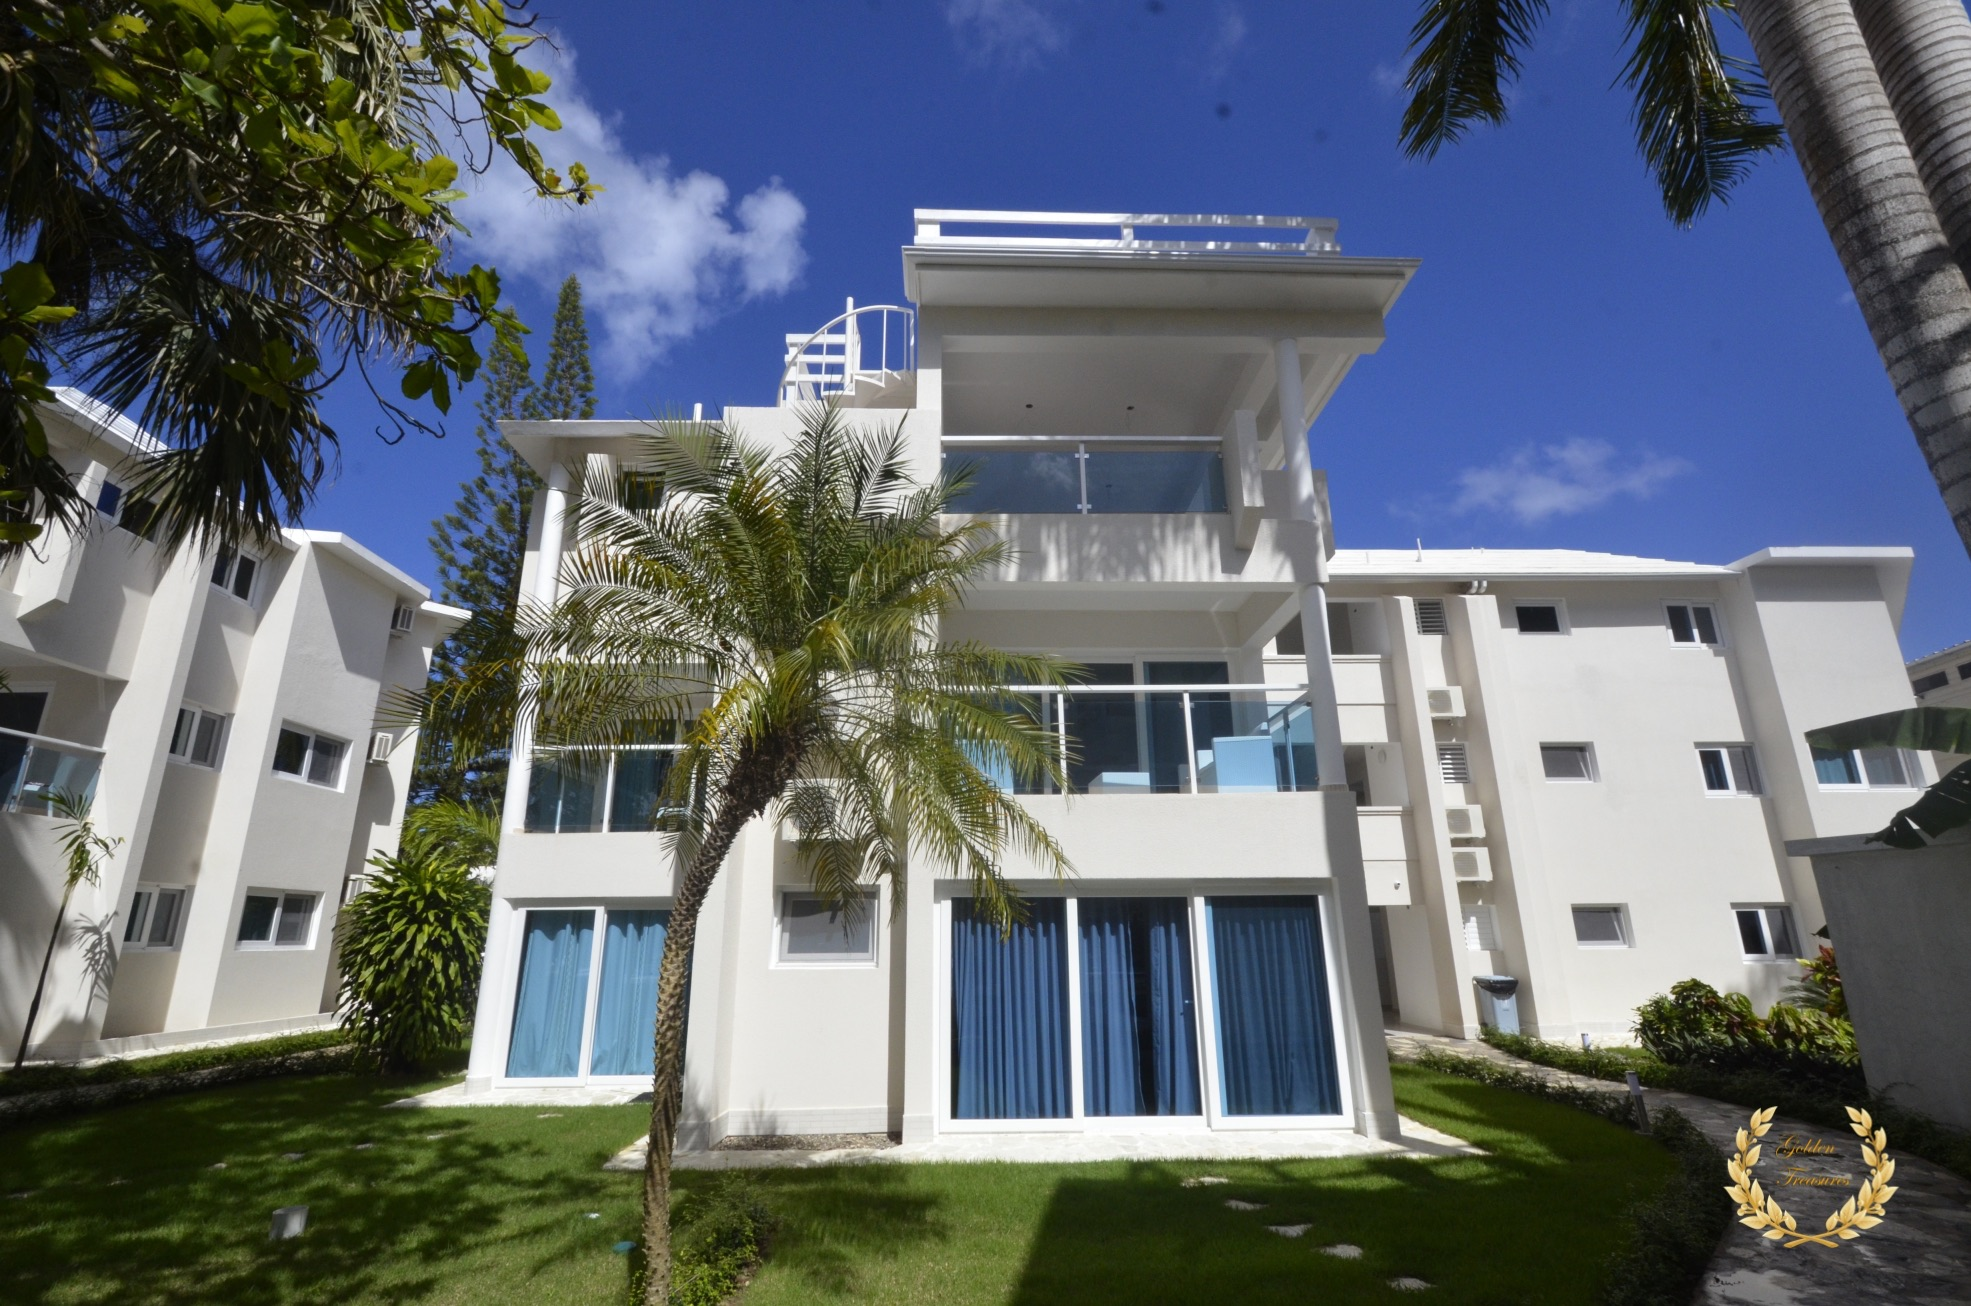 One Bedroom Condo for Sale in Cabarete